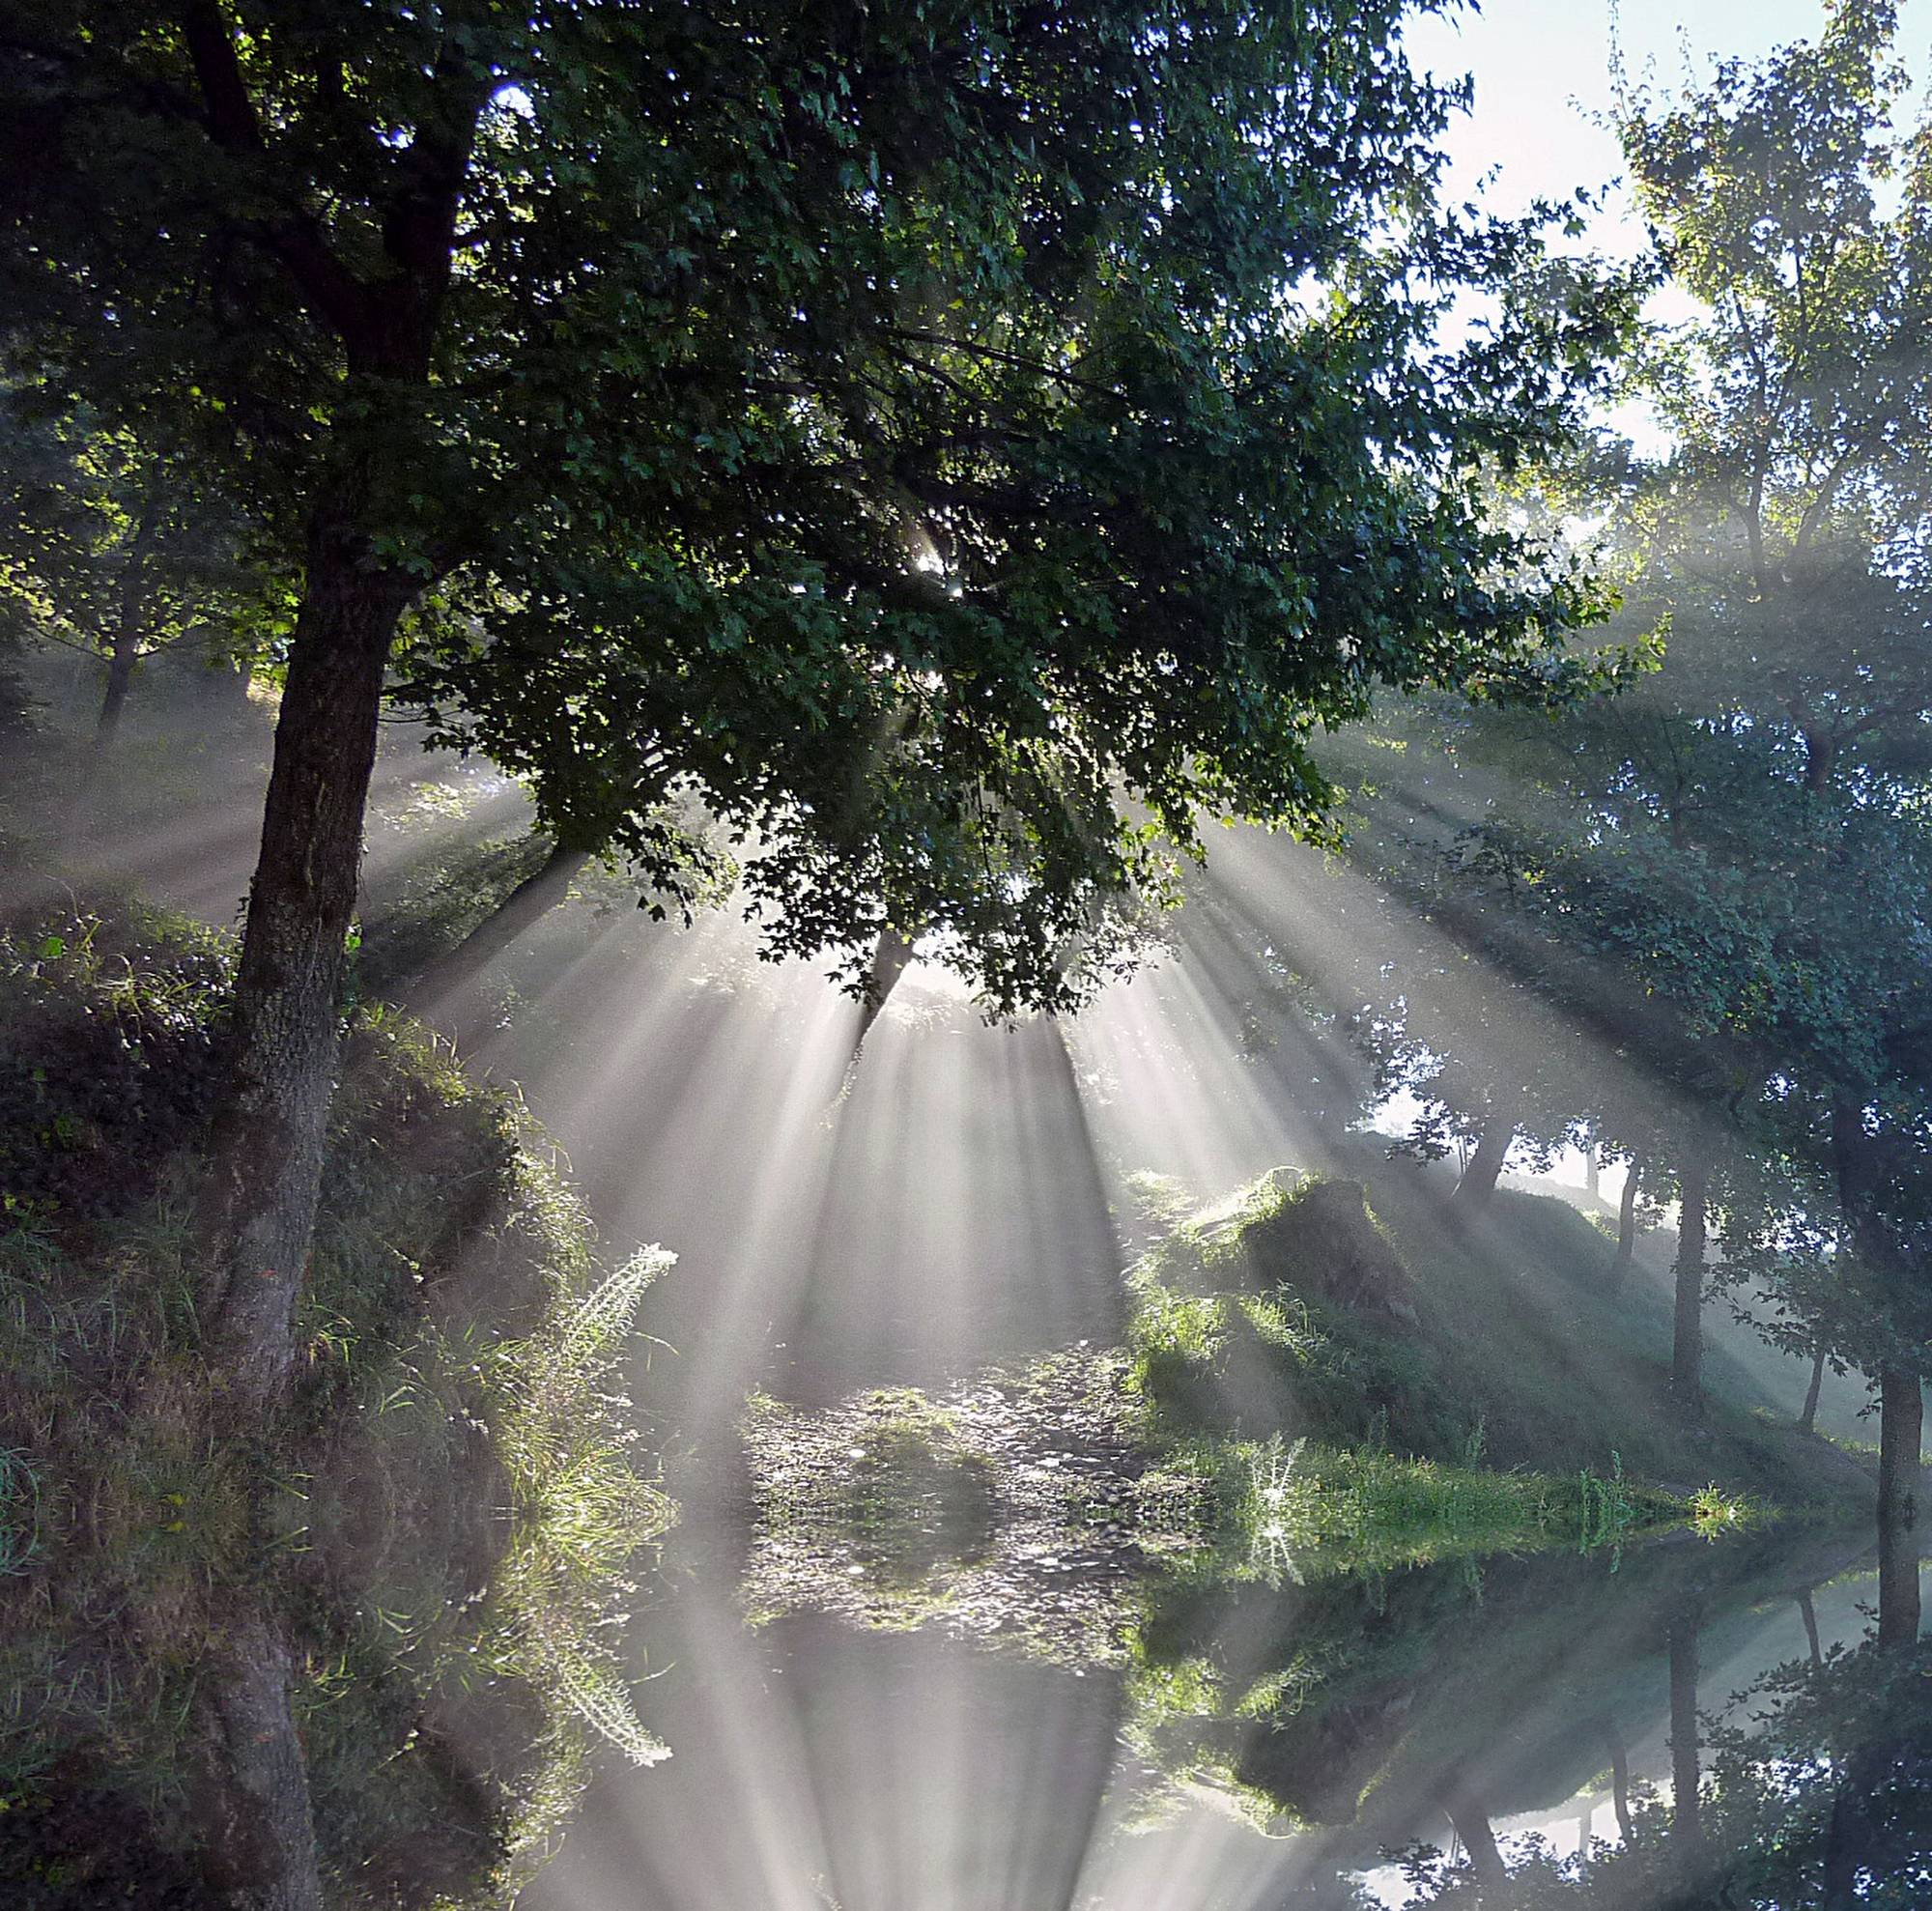 I was fortunate, on an early morning walk in Tuscany Italy, to see the beginning of the day with rays from heaven coming through a tree. I was ecstatic to be able to capture the image. I spent the morning looking at the image on my camera. I went back the next day at approximately the same time but I never saw the rays again. It is Gods Rays Reflected!